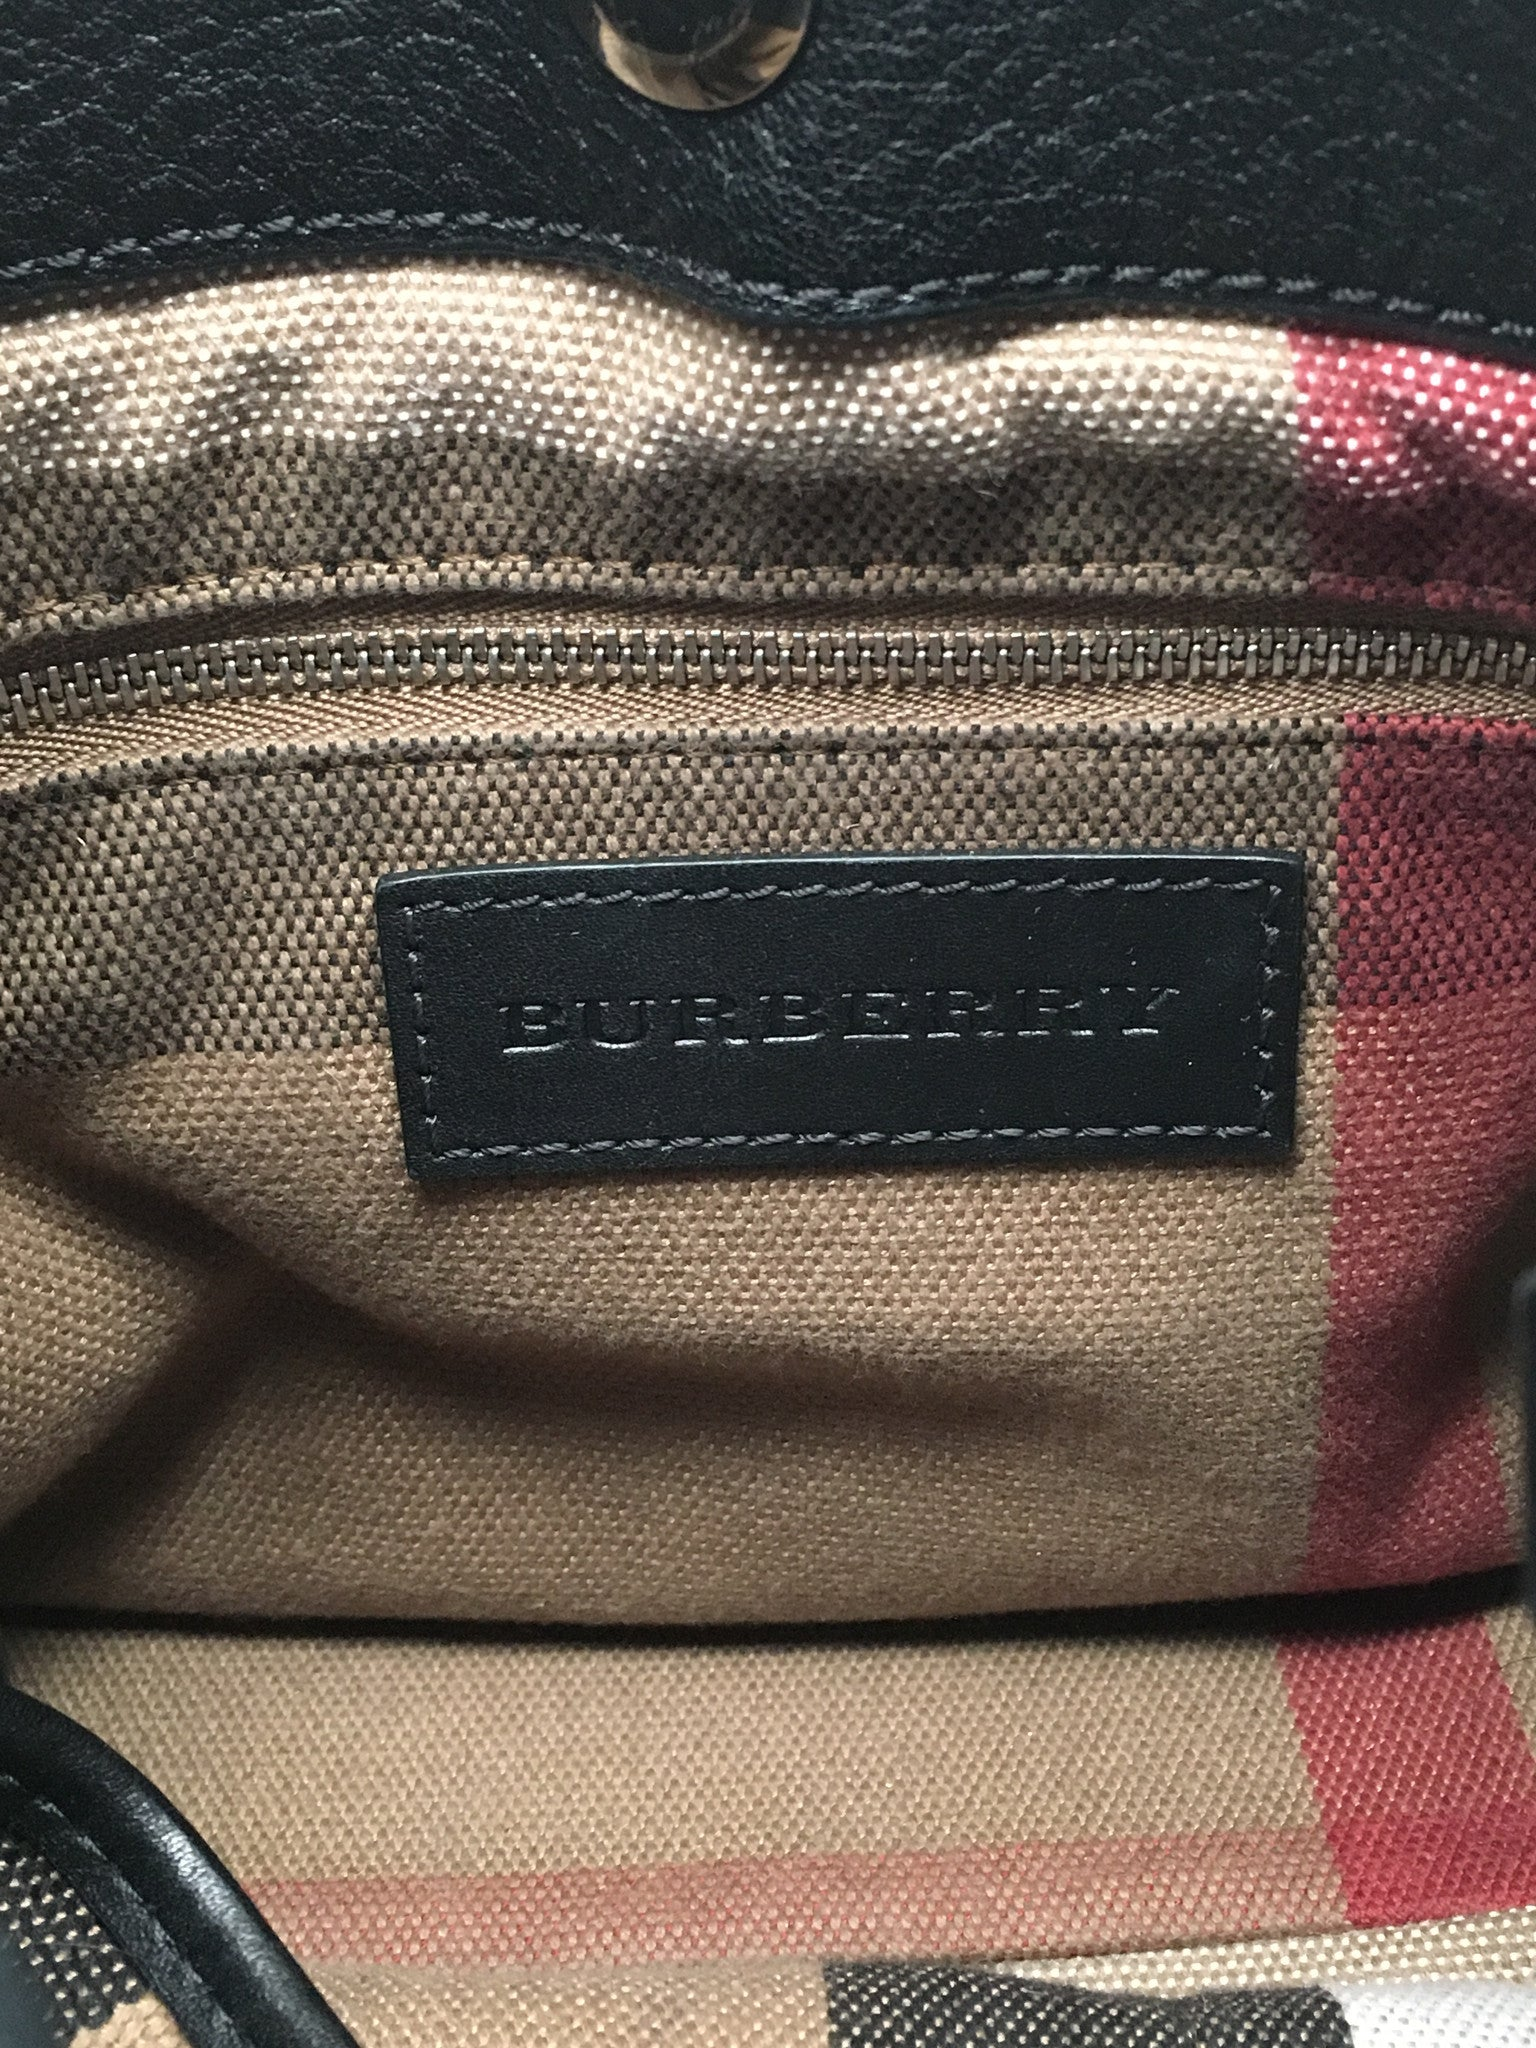 BURBERRY SMALL MAIDSTONE LEATHER SATCHEL